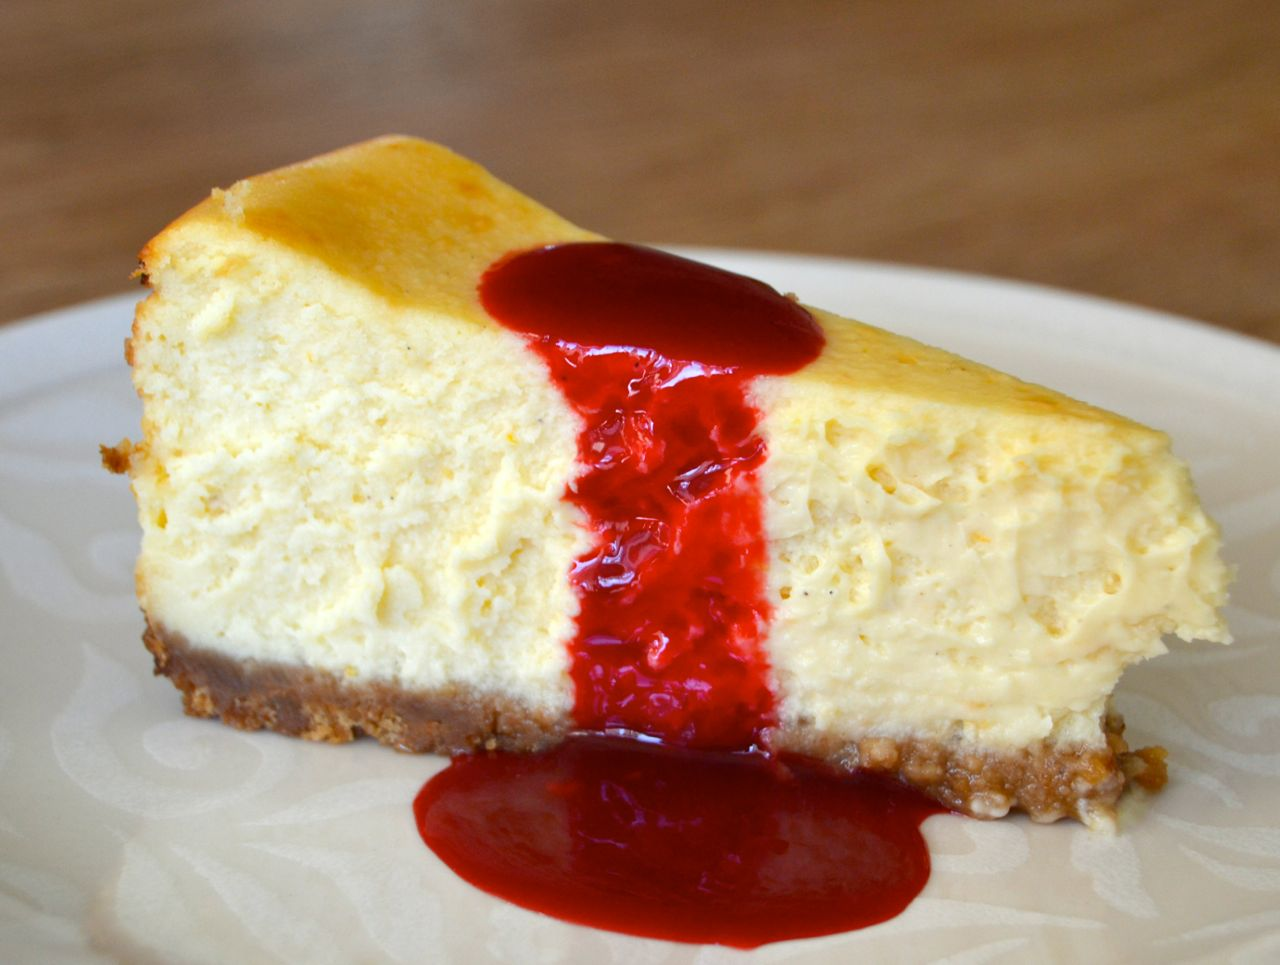 new-york-style-cheesecake-halloncoulis.jpg